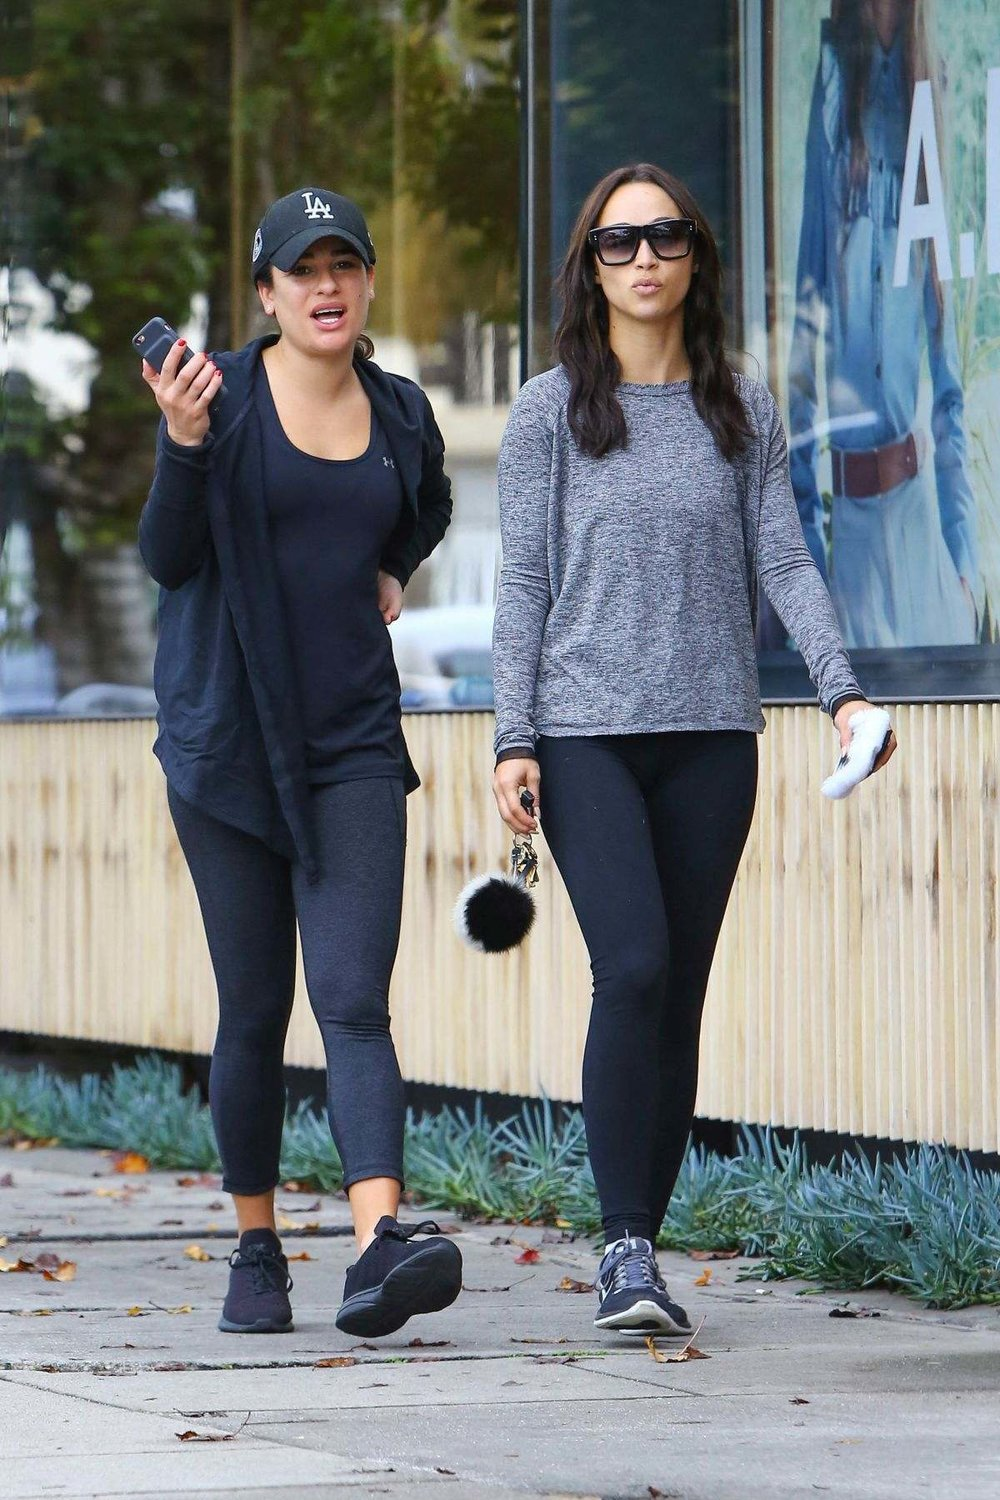 Lea Michele and Cara Santana out and about in Beverly Hills on 01.07.17.